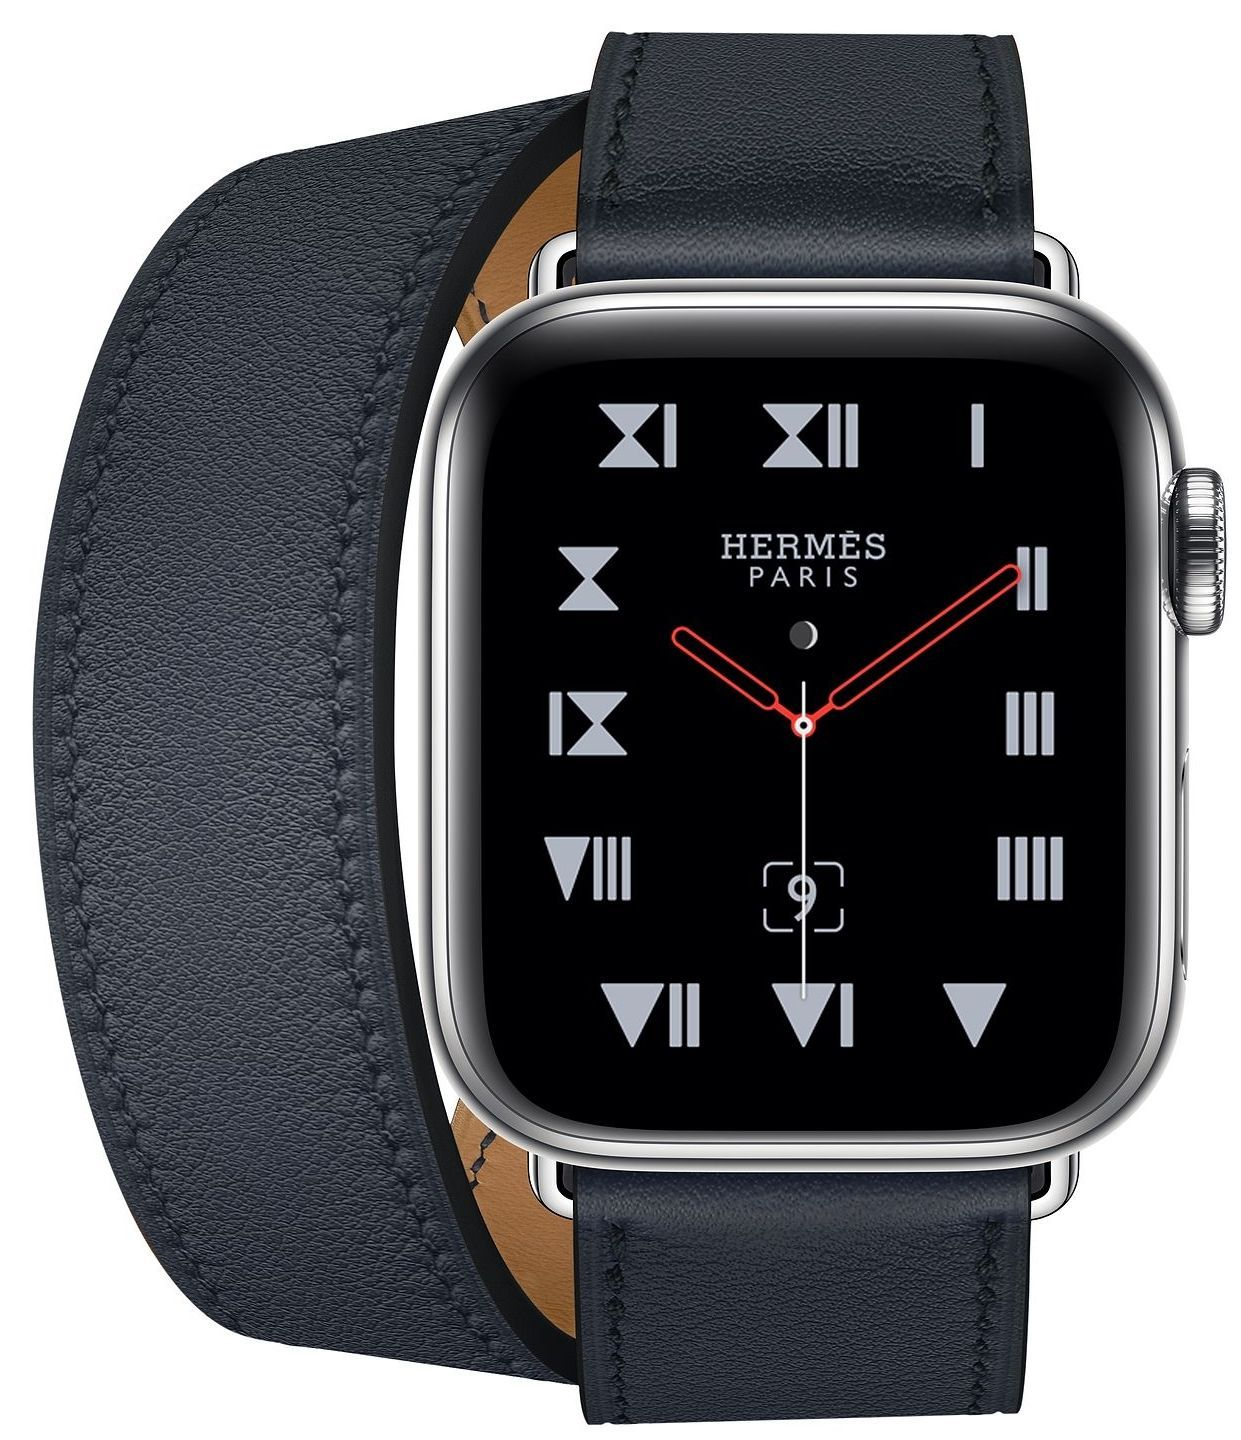 Часы Apple Watch Hermès Series 4 GPS+Cellular 40mm Stainless Steel Case with Bleu Indigo Swift Leather Double Tour (MU6Q2), картинка 2